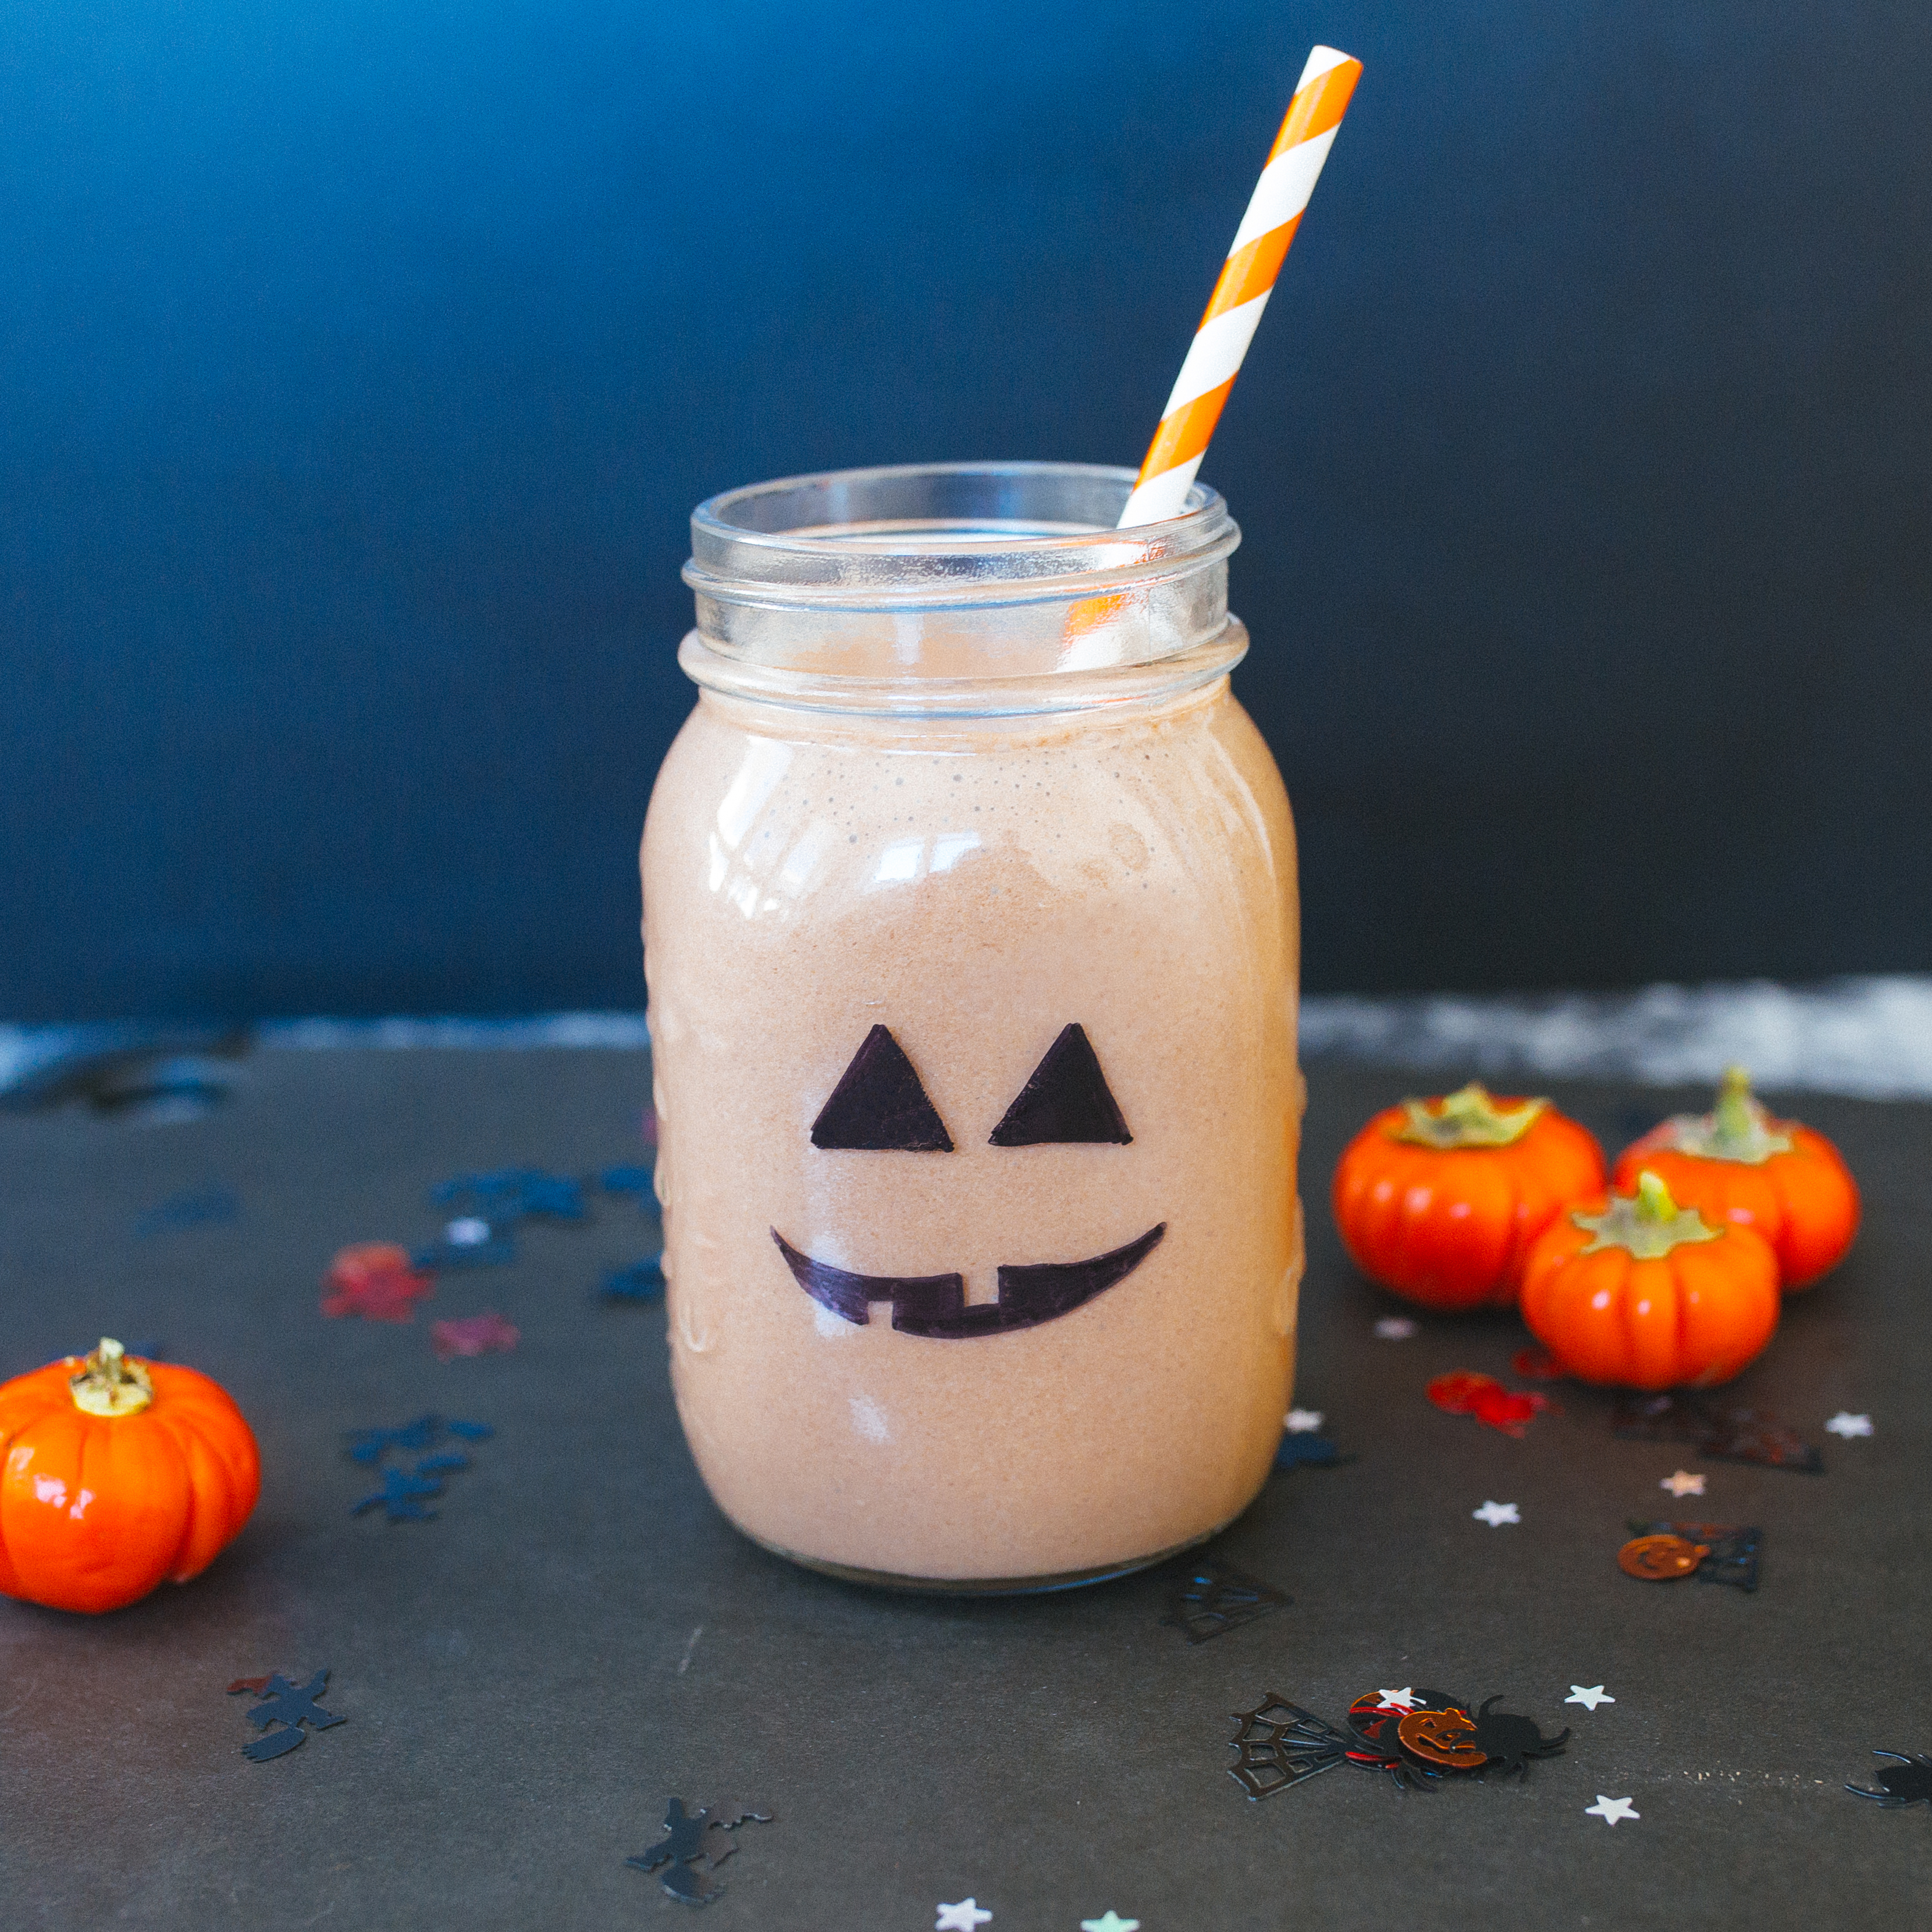 Looking for spook-tacular Halloween drinks? Our Shakeology smoothies are getting in on the haunted holiday fun with ghoulish costumes of their own, like this jack-o'-lantern smoothie.